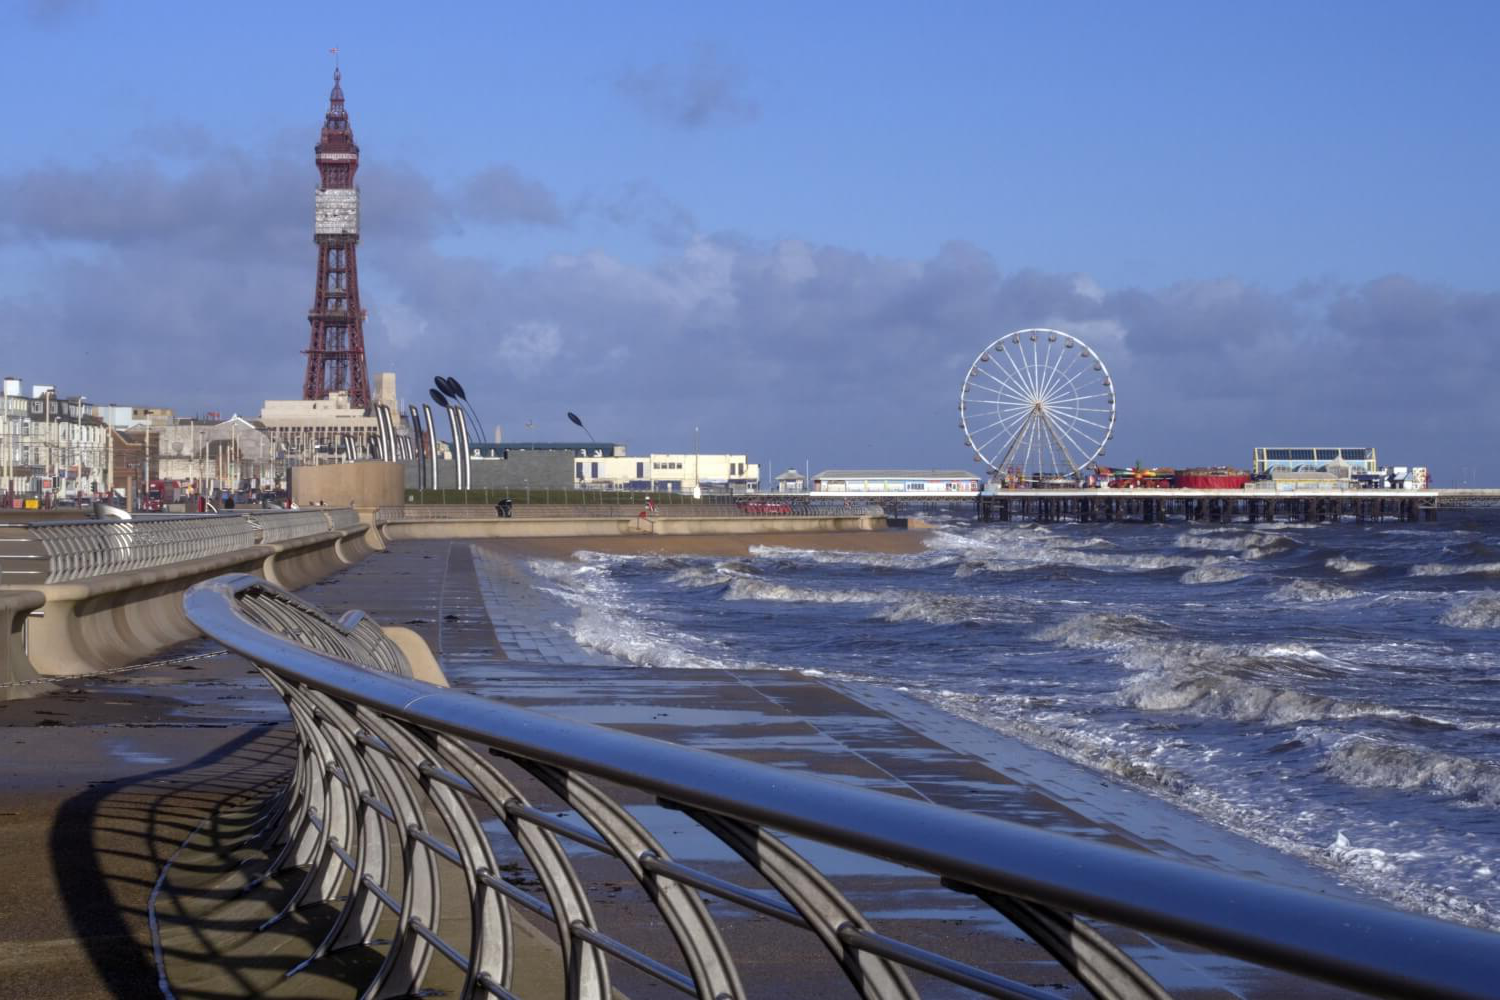 Waves come into sh要么e on the beach at Blackpool, with the skyline dominated by the iconic 布莱克浦 Tower.